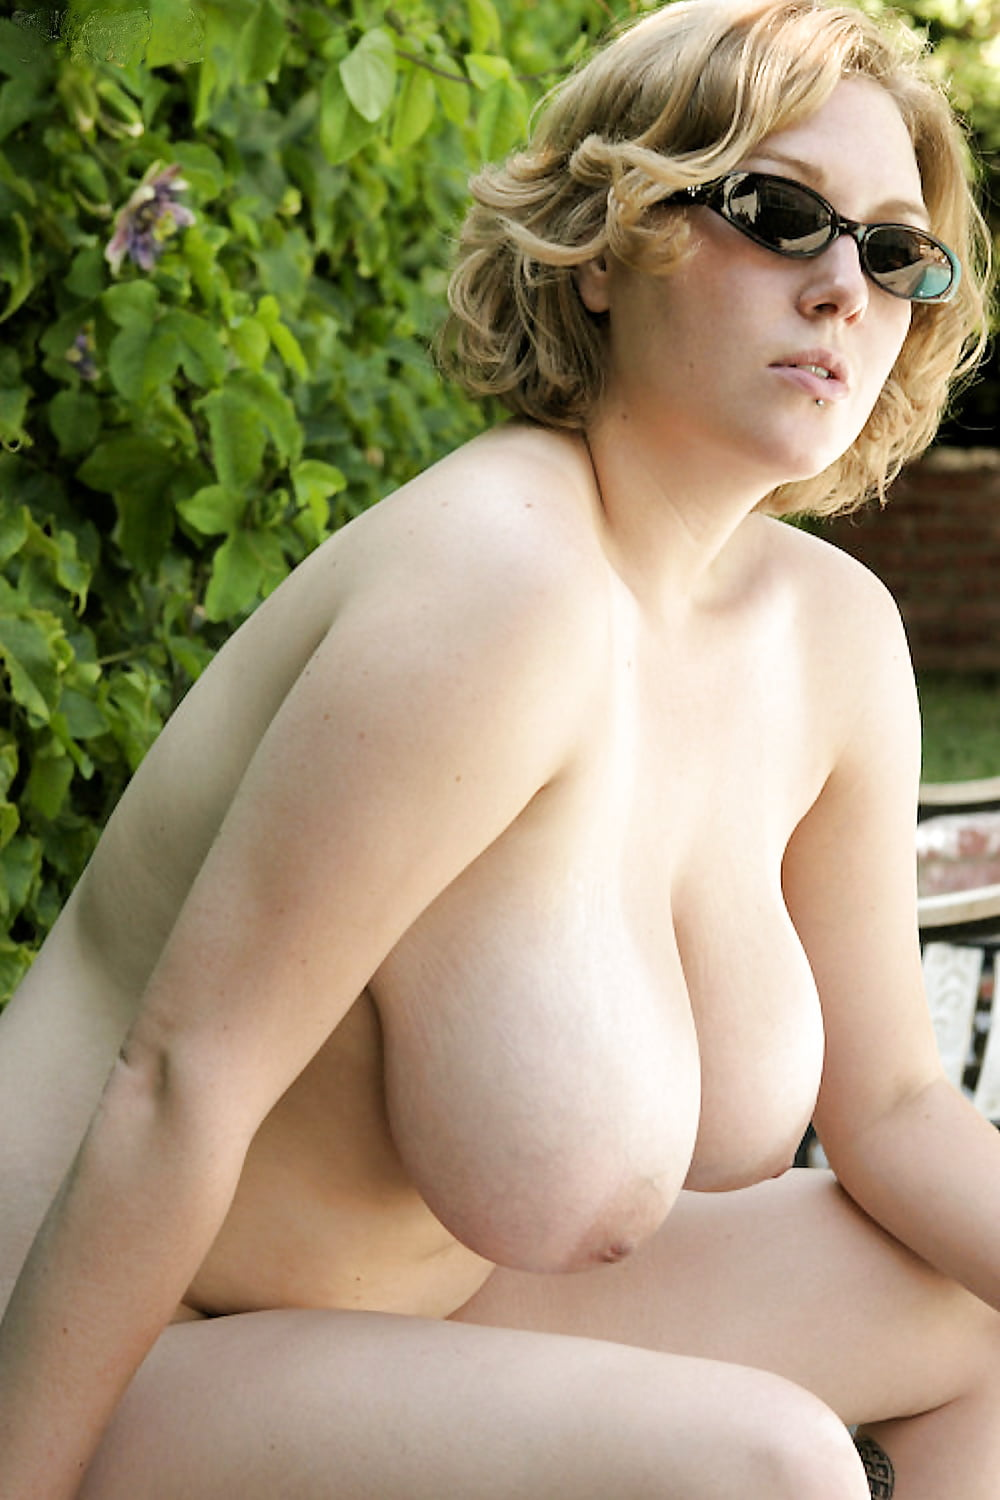 u-k-big-breast-nude-lady